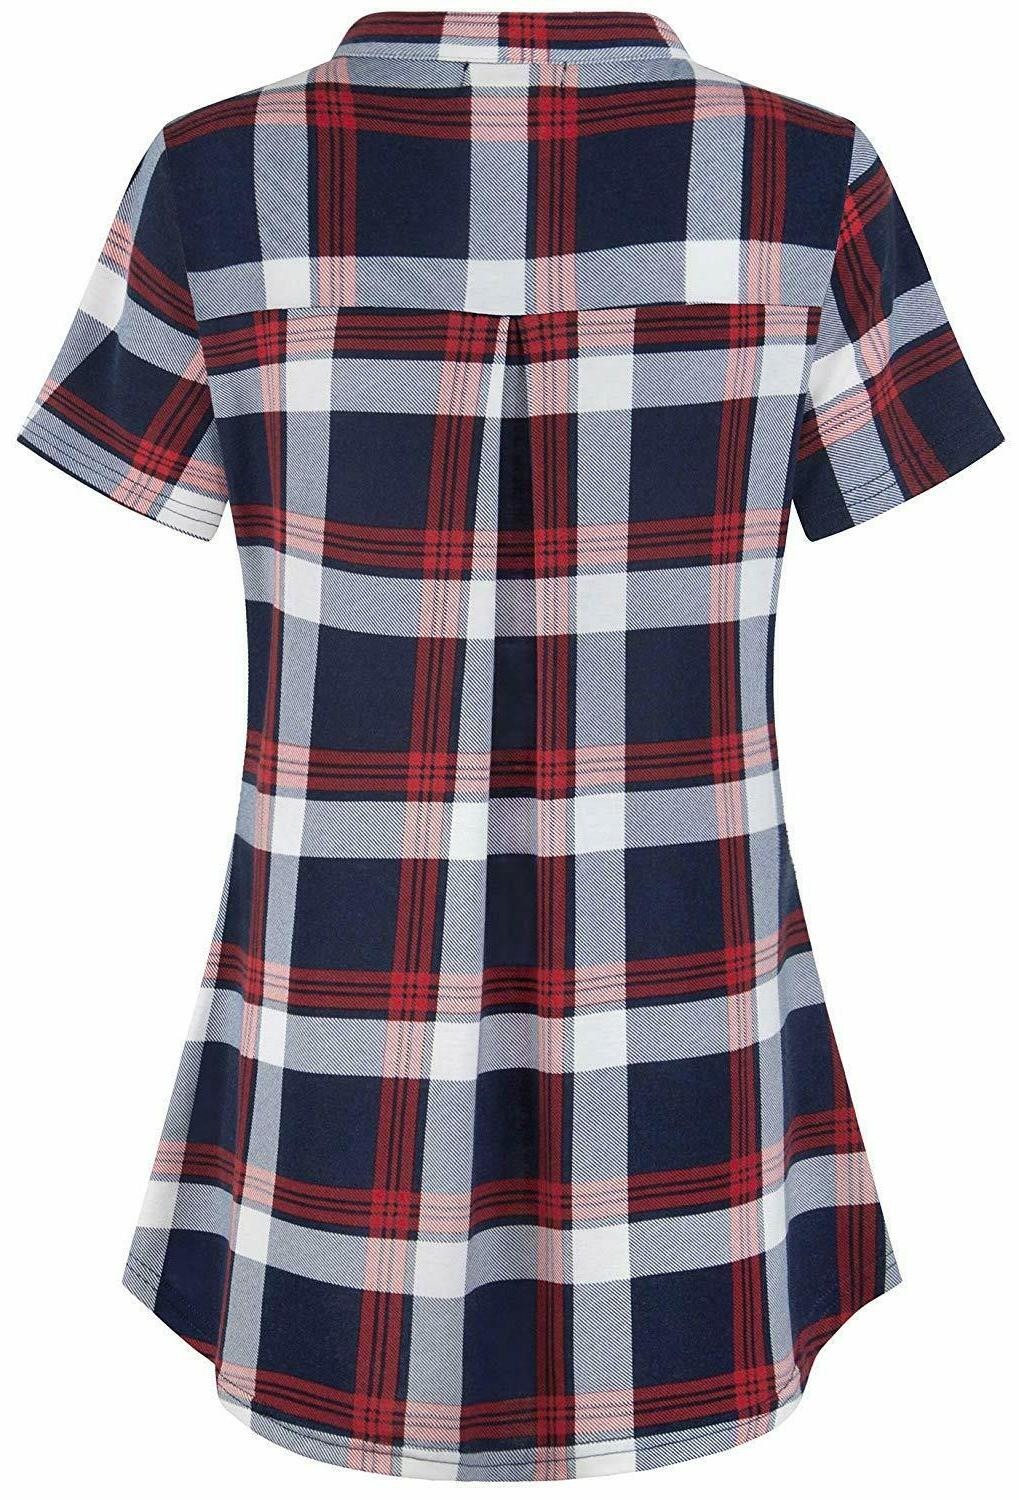 BEPEI Short Plaid up Neck Casual Blouse Top